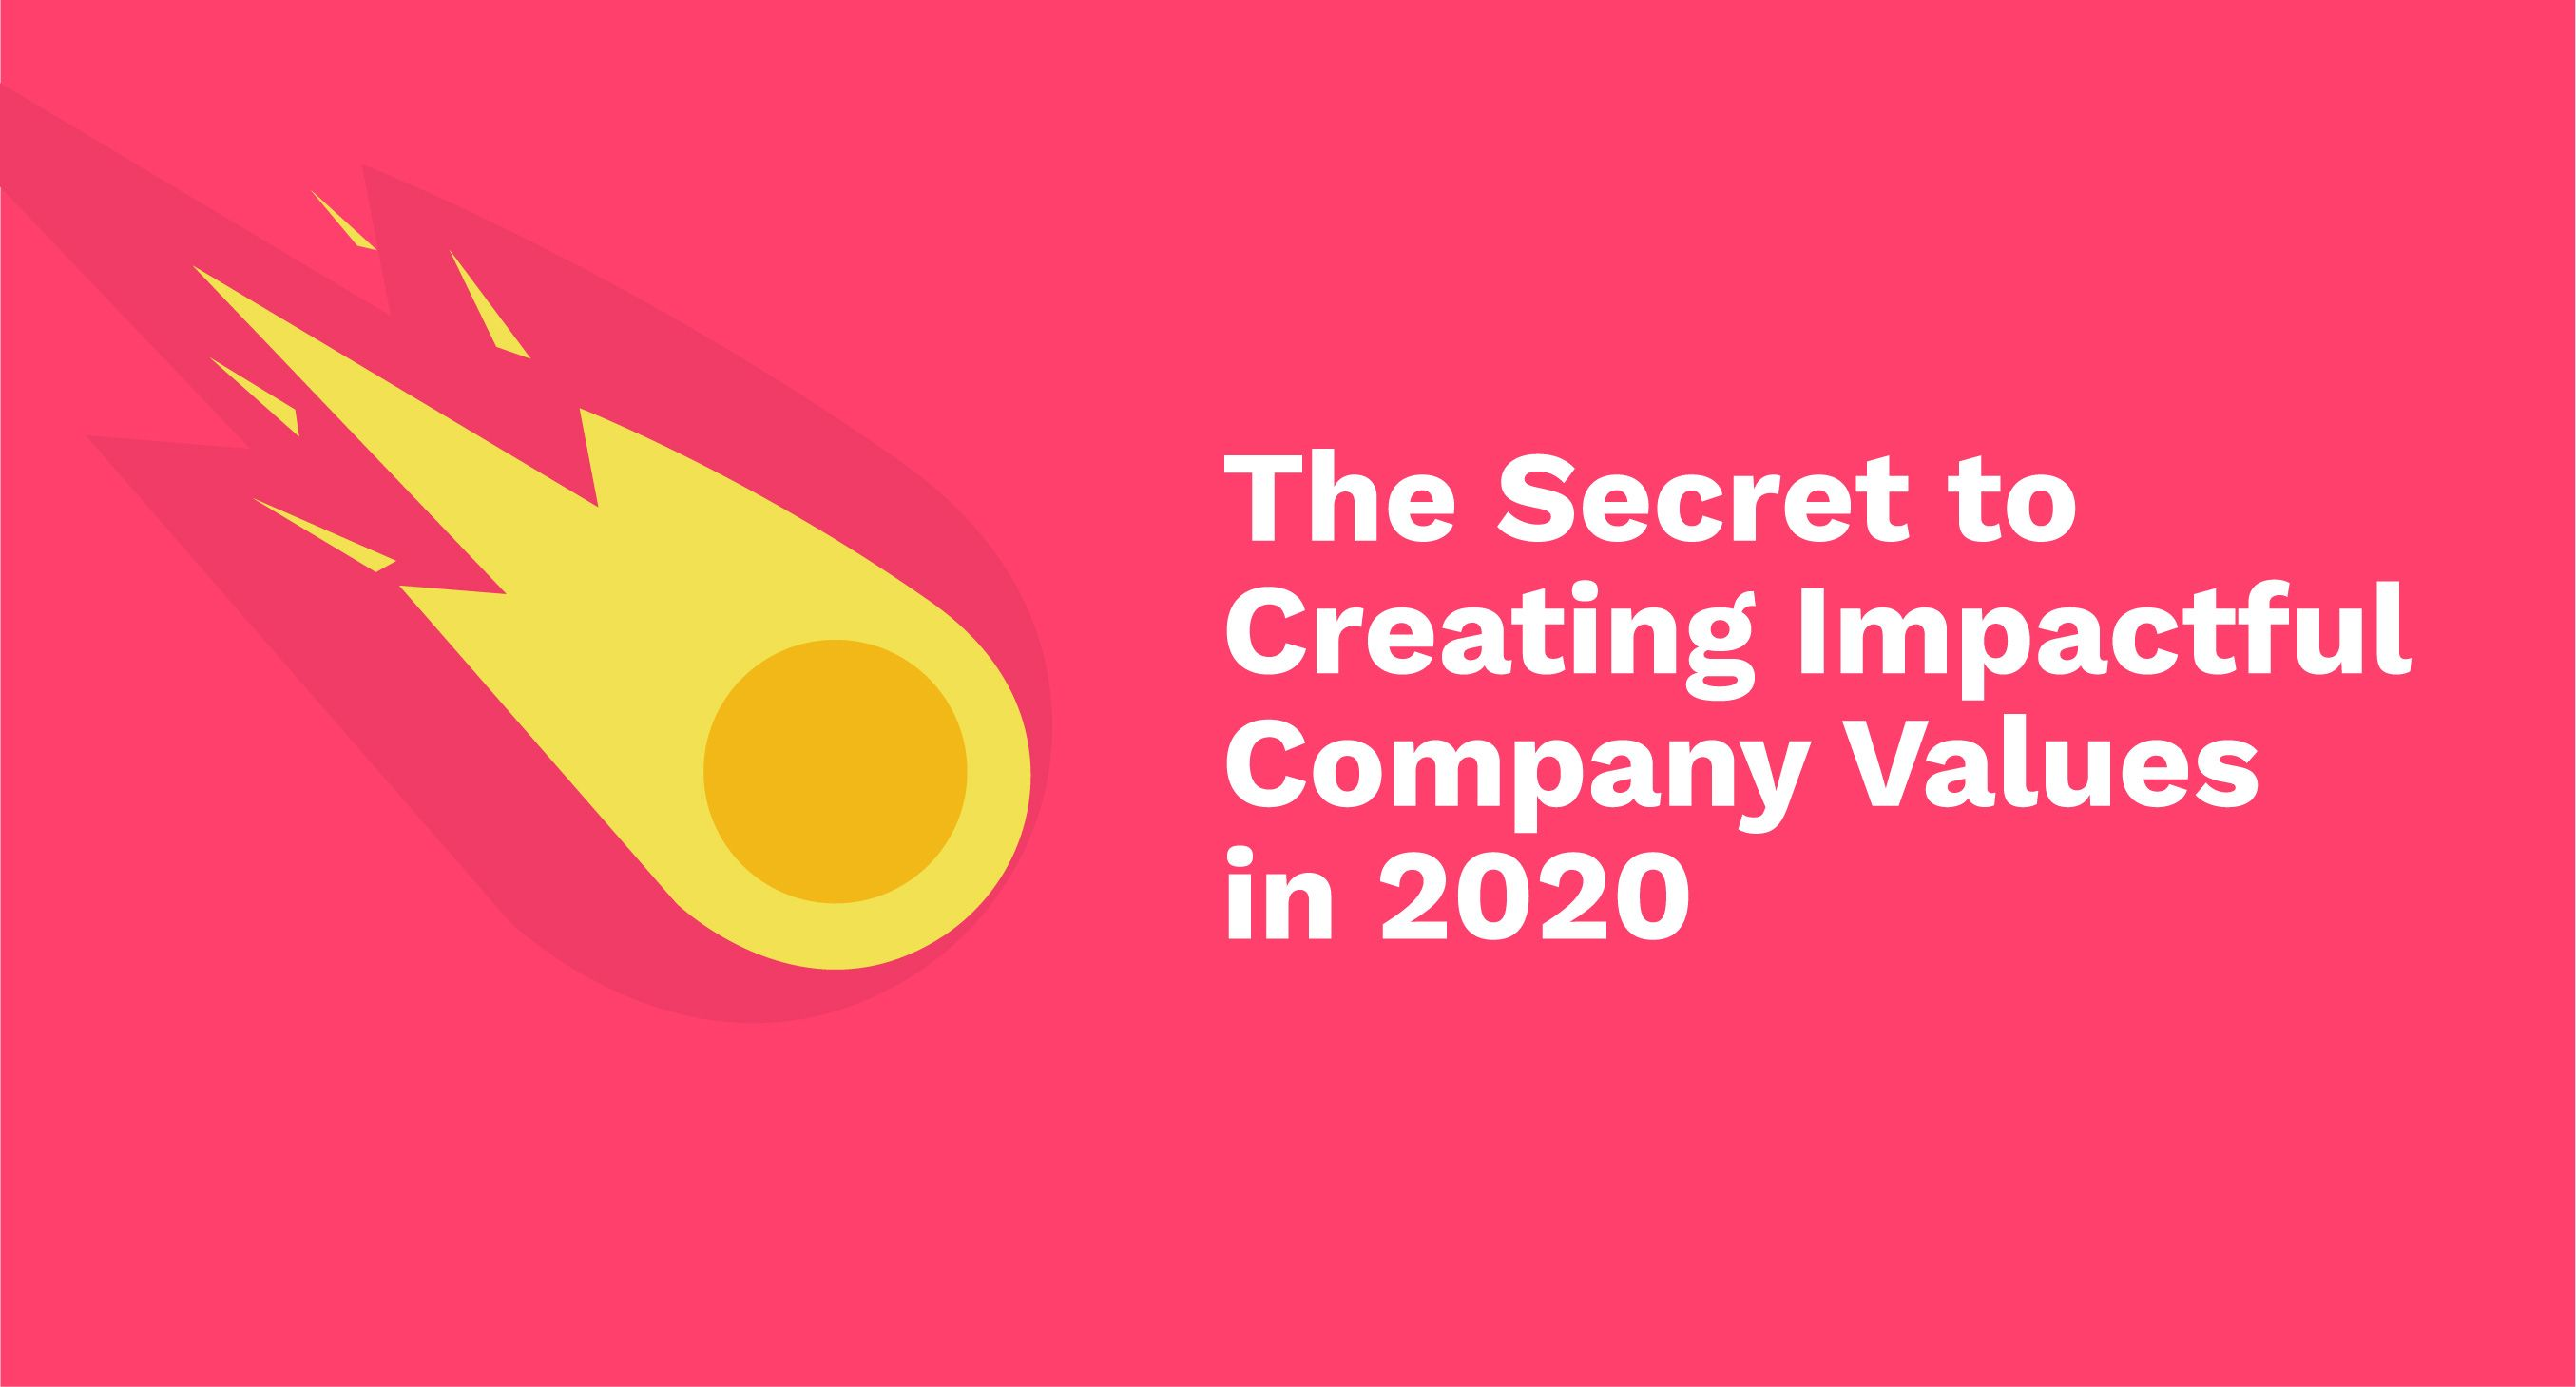 The Secret to Creating Impactful Company Values in 2020